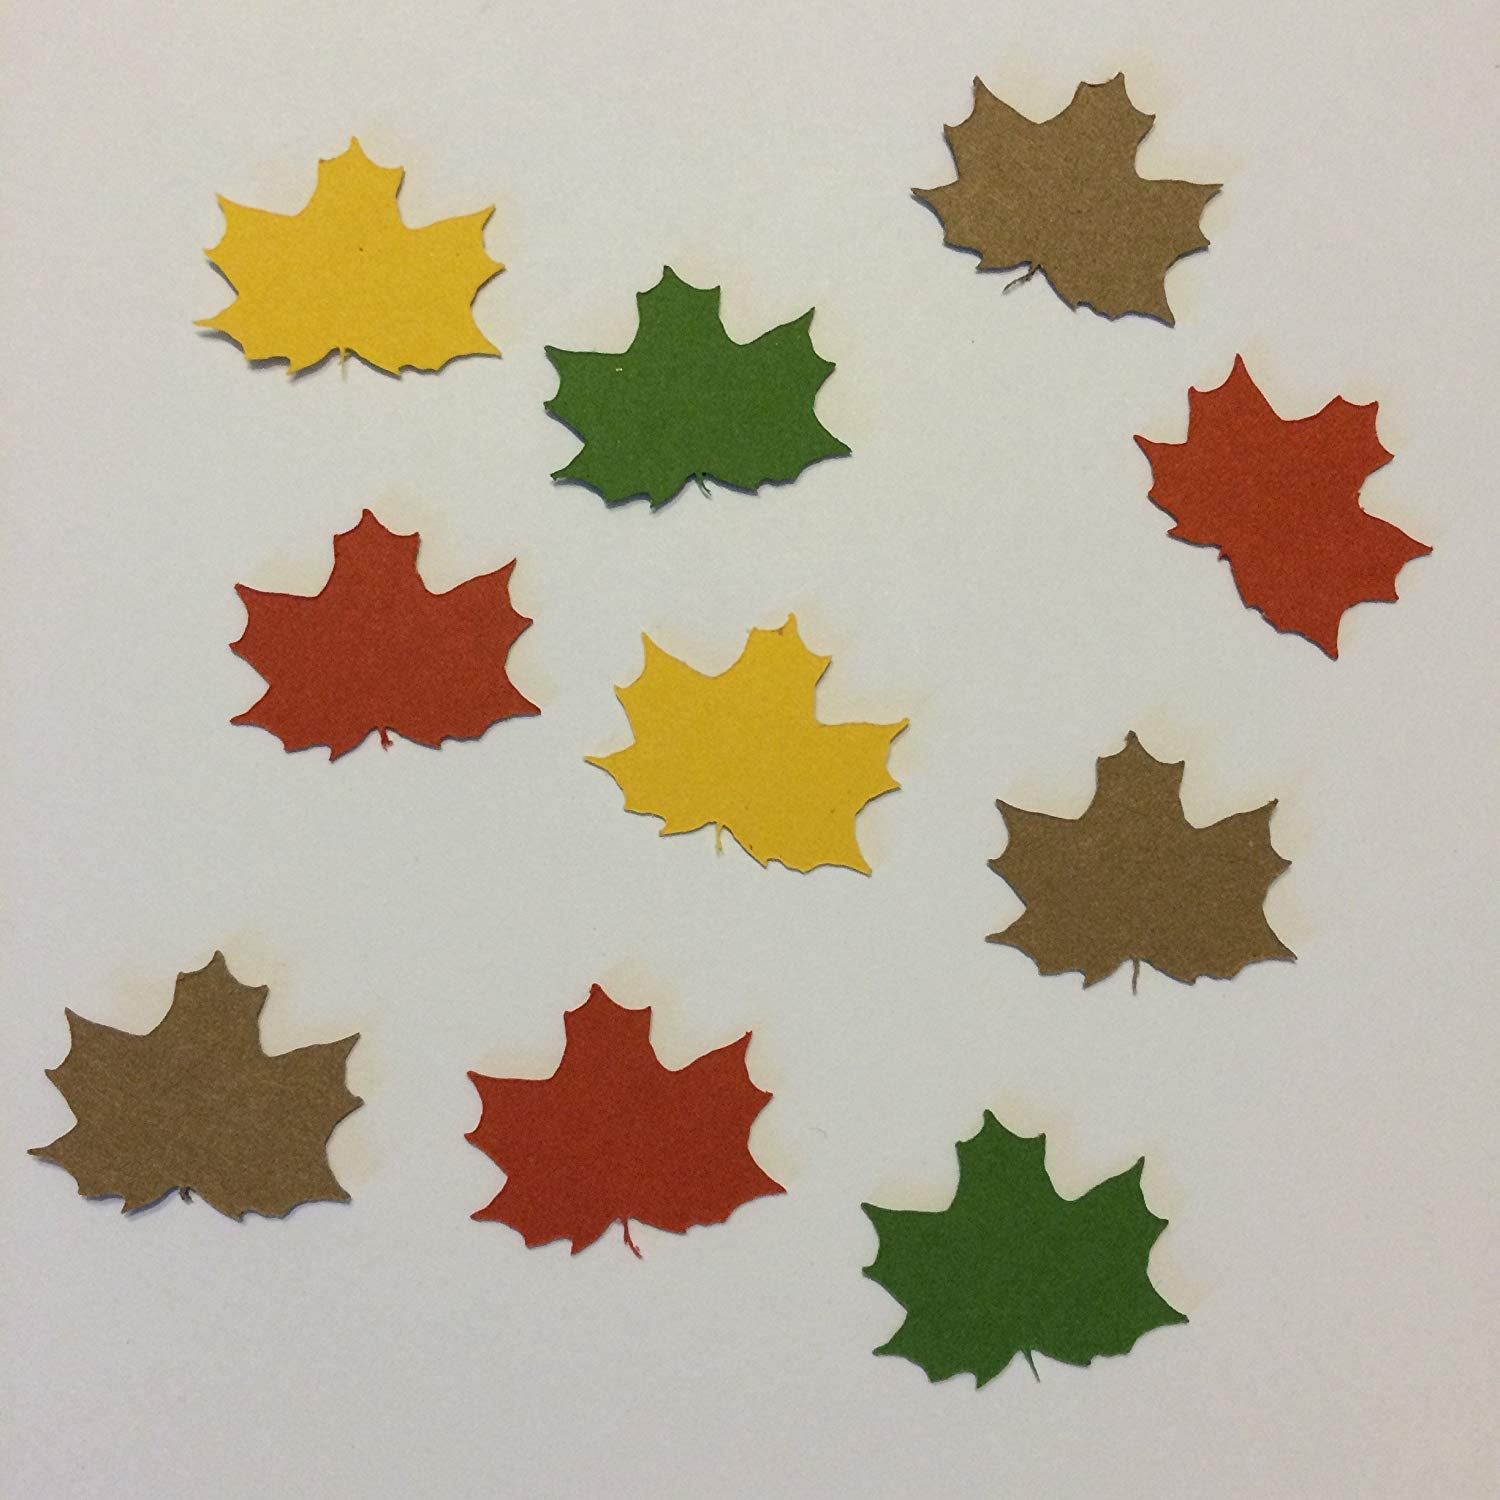 1in Confetti Set, Maple Leaf Cut Outs, Fall Decorations, Autumn Decorations, Thanksgiving Party Supplies, Thanksgiving Party Supplies, Halloween Decorations, Rustic Confetti, Maple Leaf Decorations